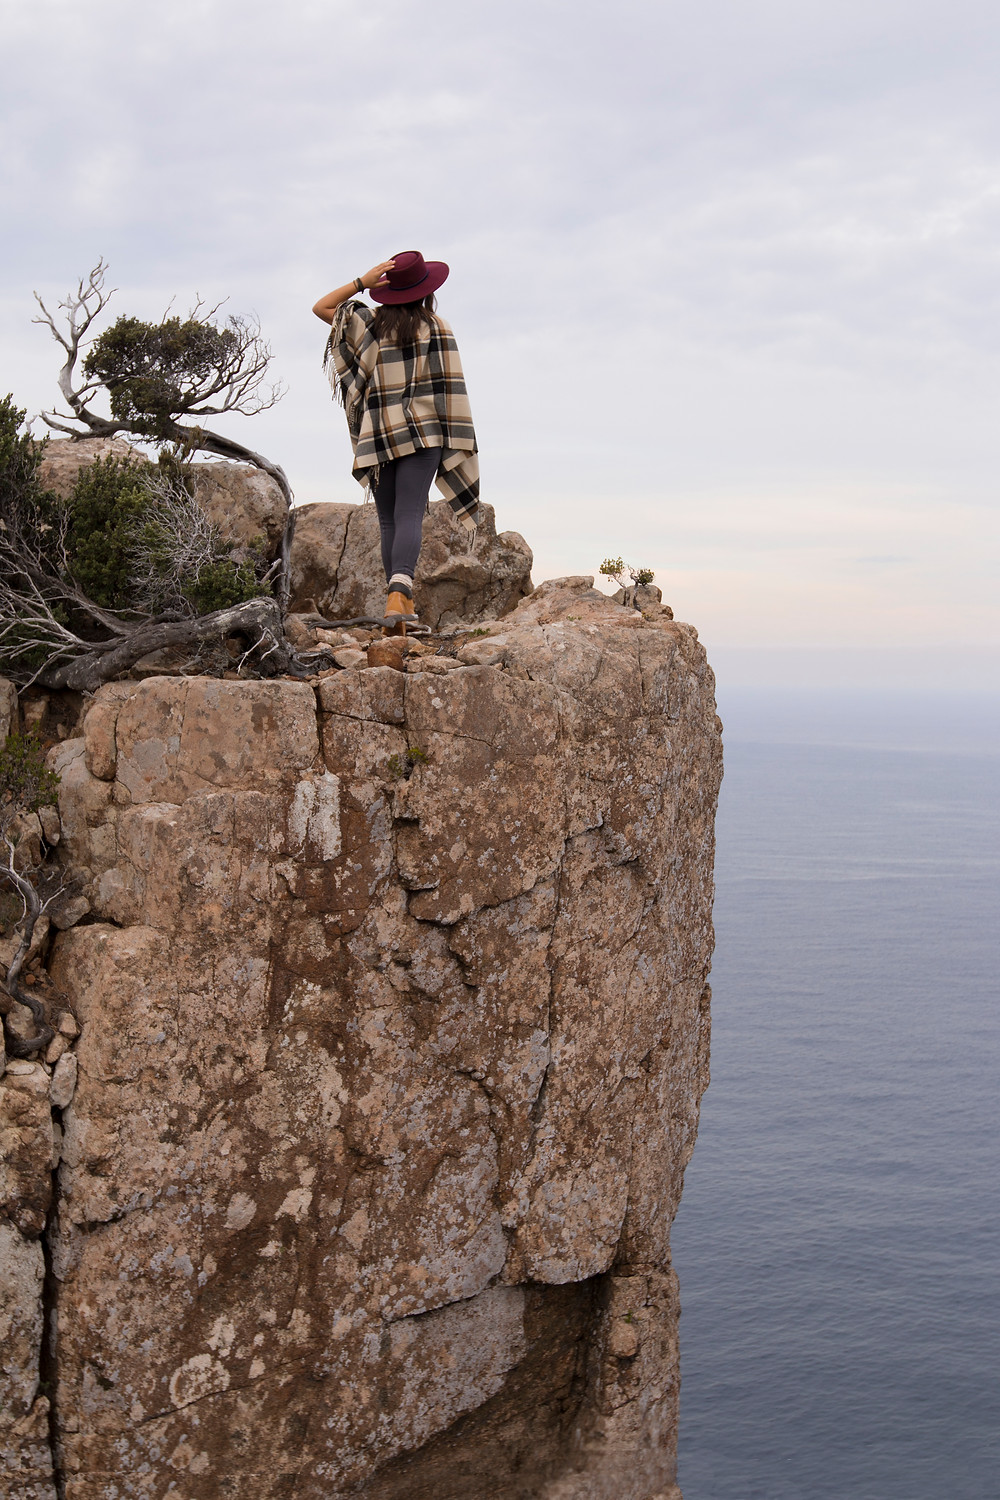 Sturdy boots needed when peaking over cliffs of Cape Hauy.